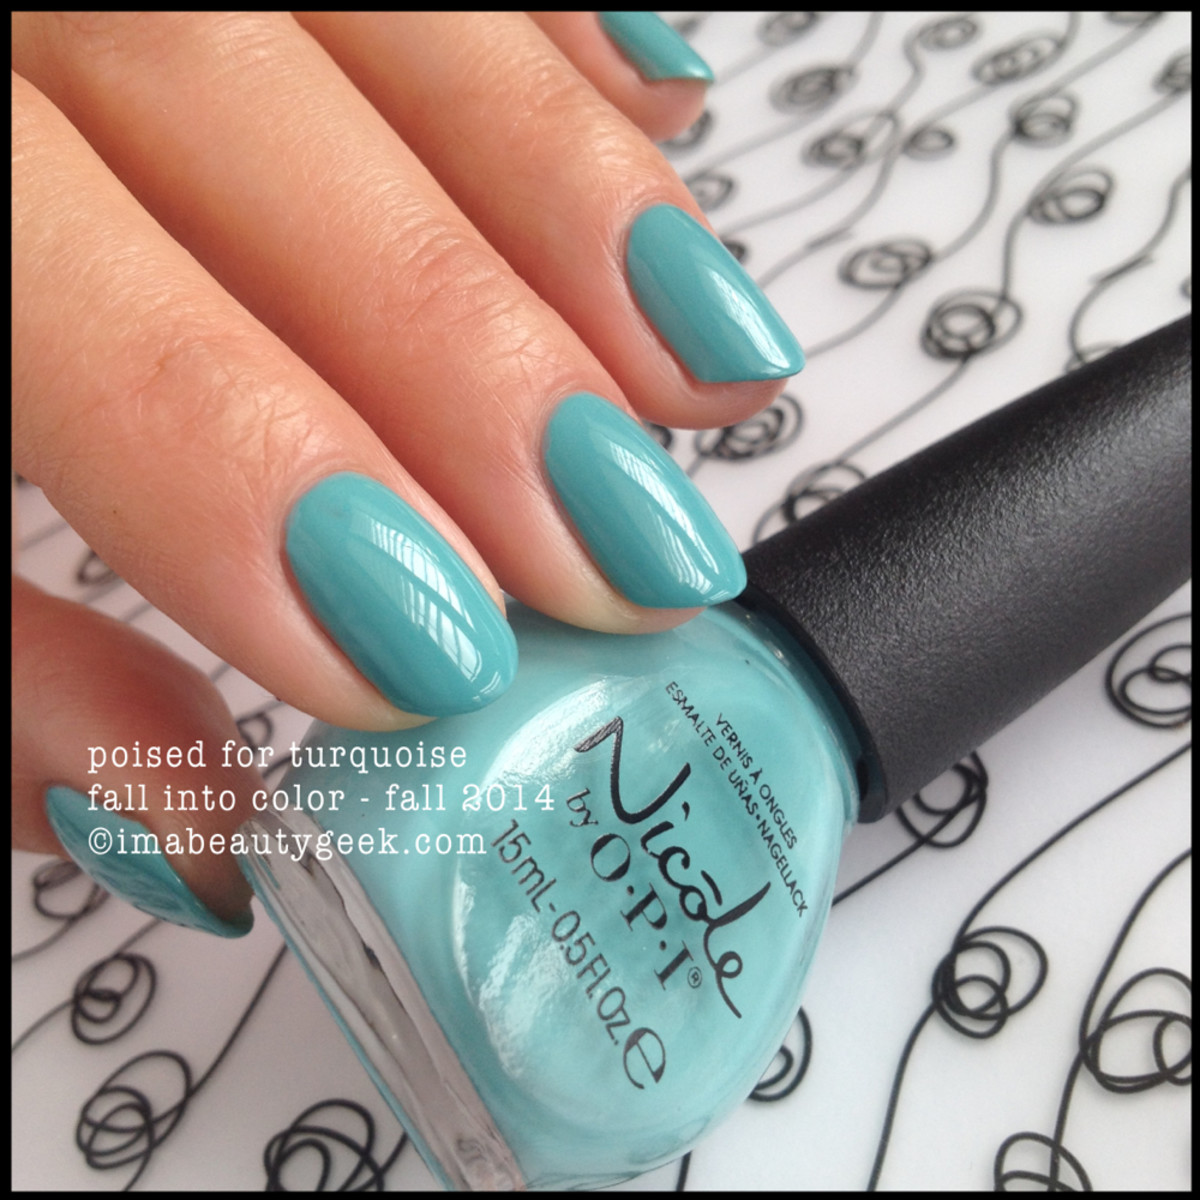 Nicole by OPI Poised For Turquoise Fall 2014